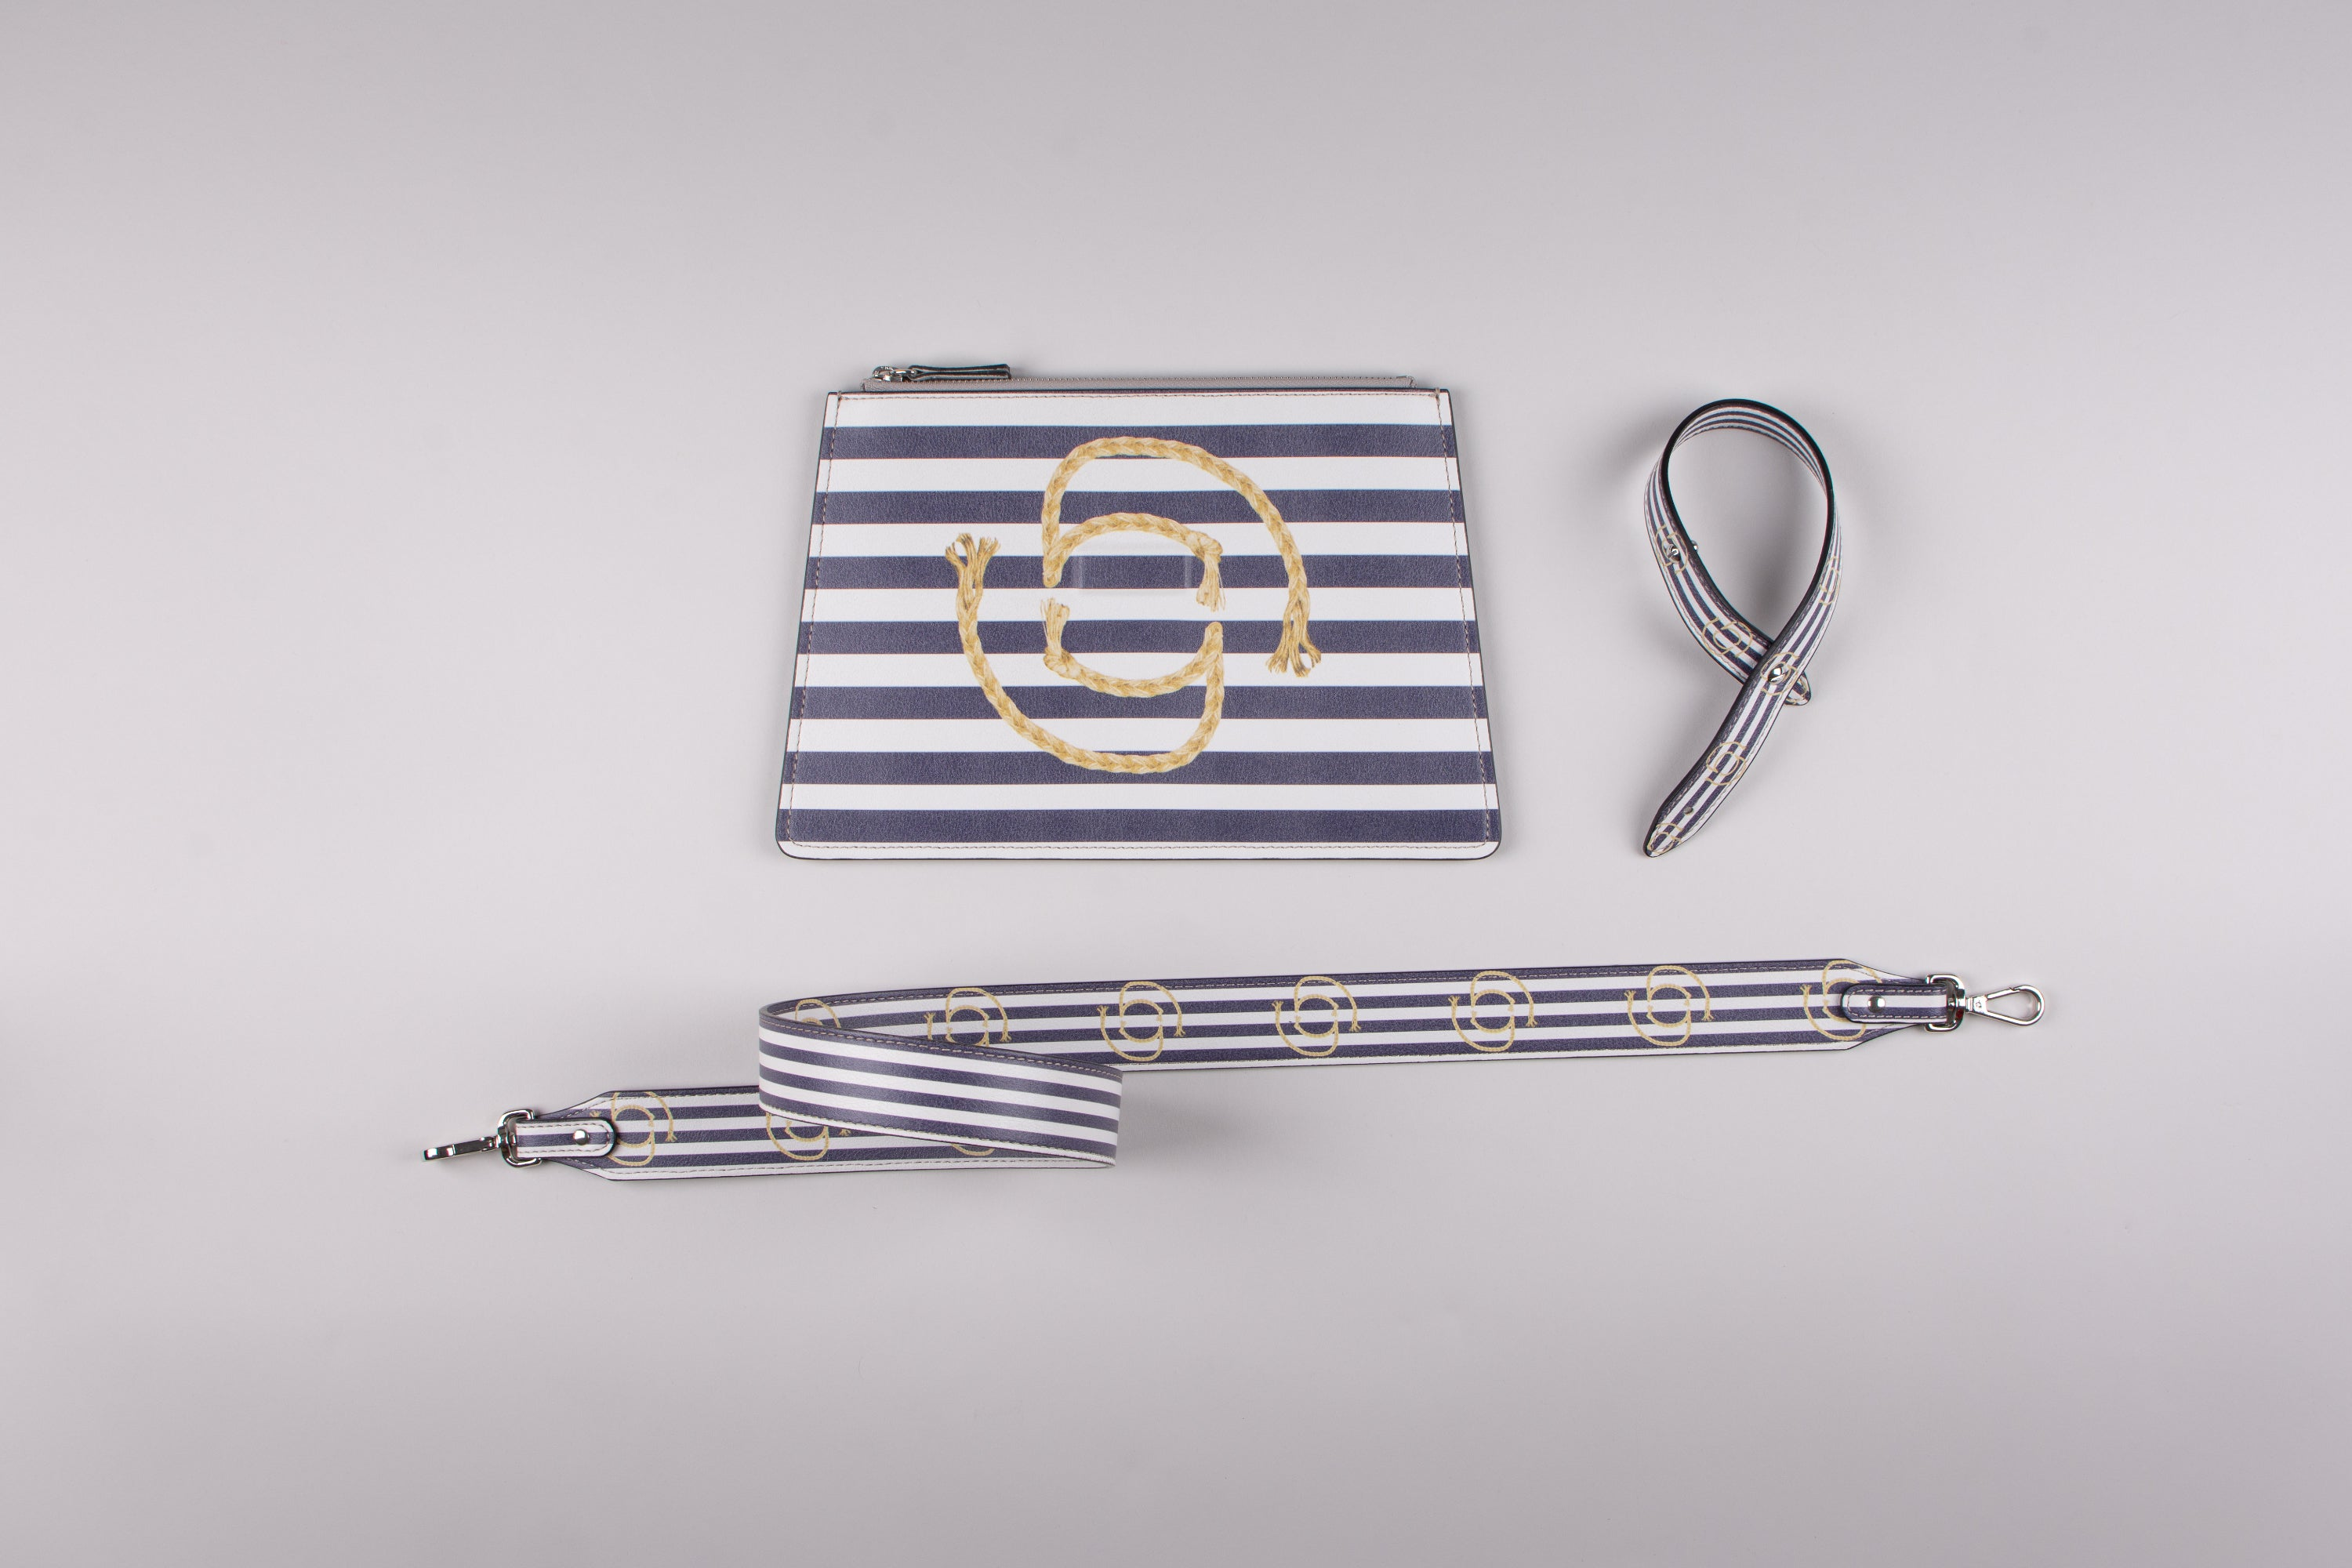 happy genie bag, happy genie, luxury bag, apple bag, apple skin, apple leather, vegan leather, multifunctional bag, clutch set, stripes, blue, marine, innovative material.